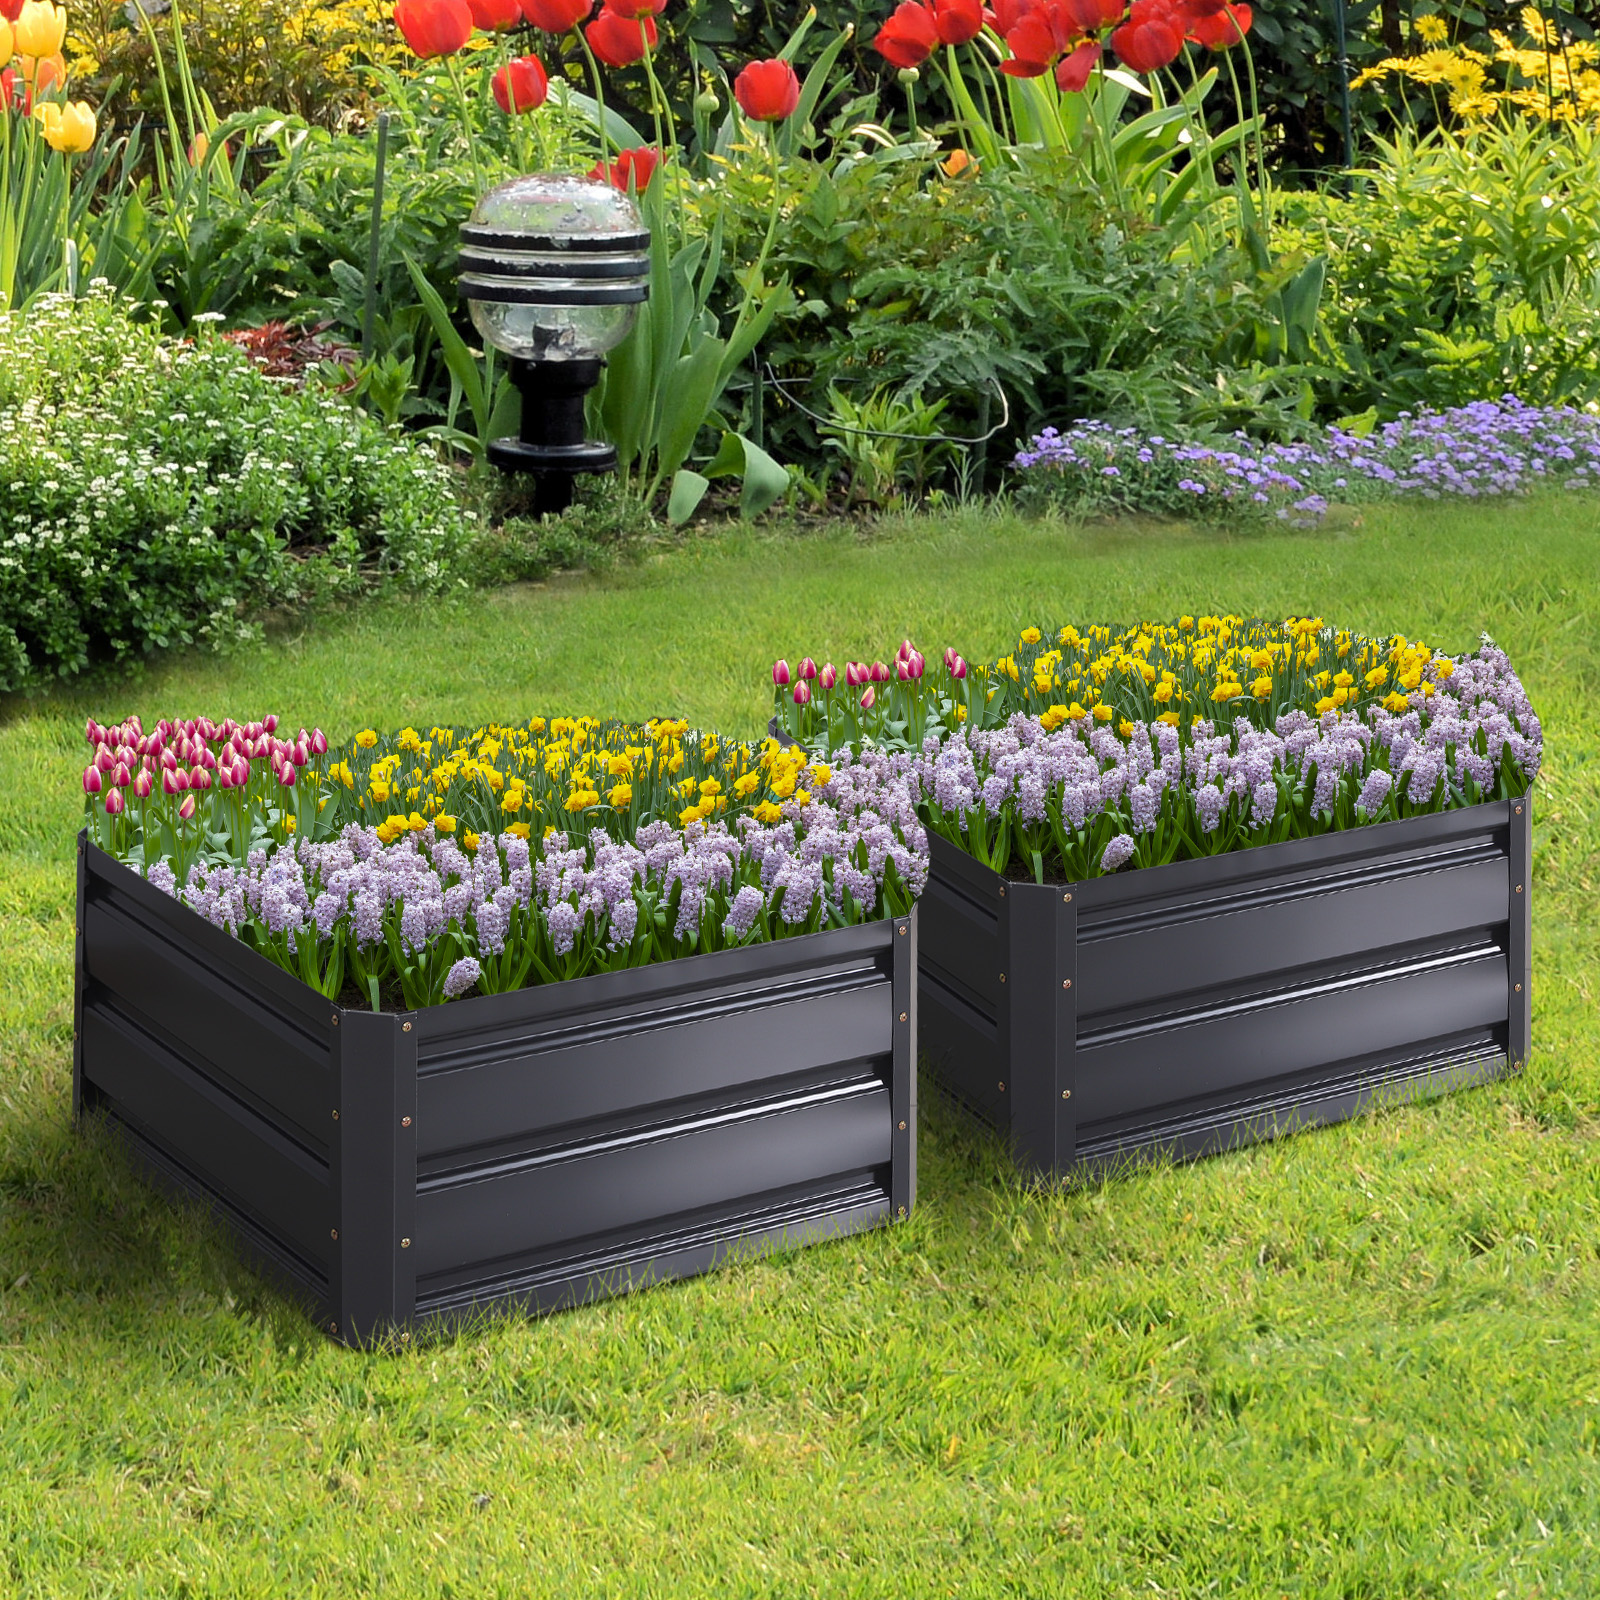 Picture of: 2pc 24×24 Metal Raised Vegetable Garden Bed Plant Box Growing Flowers Gray Ebay